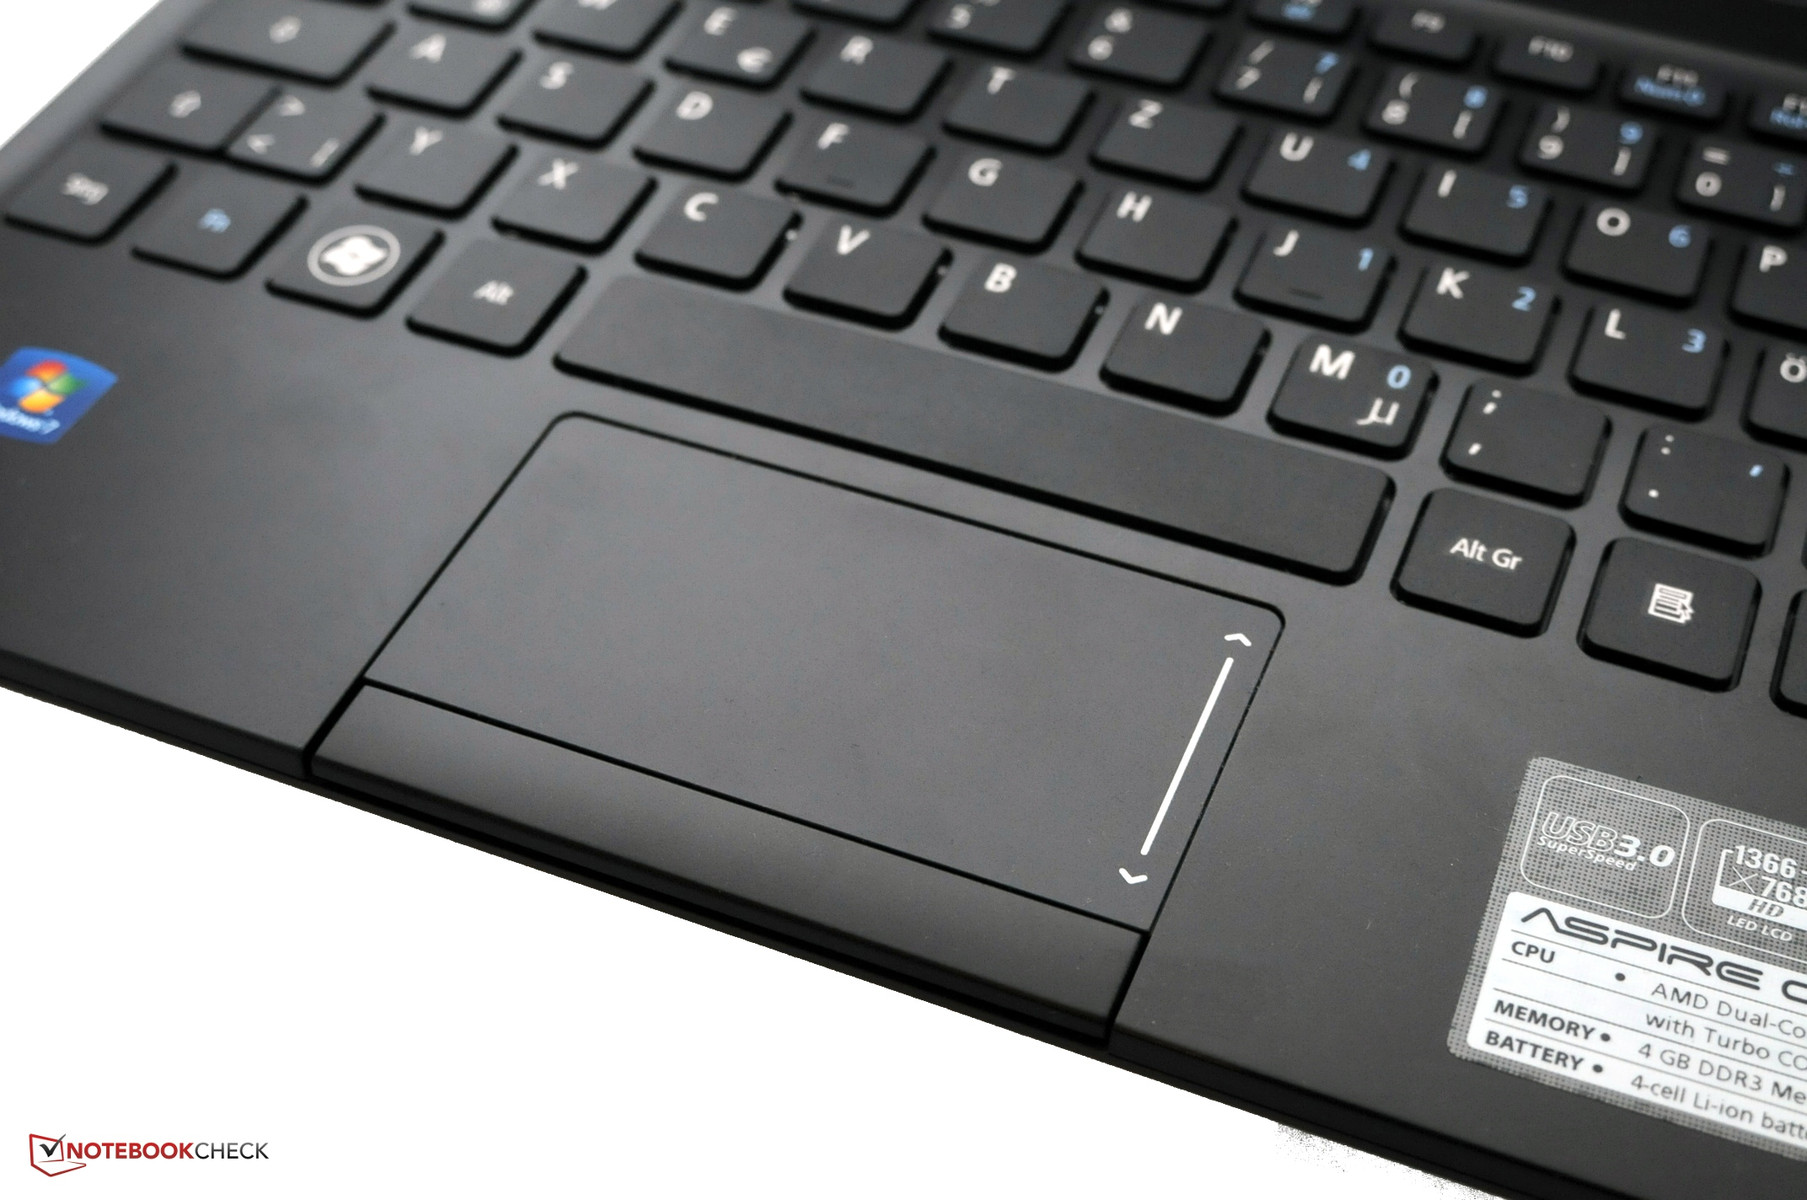 Review Acer Aspire One 725 Notebook Reviews Es1 131 2gb Ddr3 Intel Celeron N3050 116 Ferric Red Linux The Touchpad Is Sufficiently Dimensioned And Possesses Good Gliding Properties